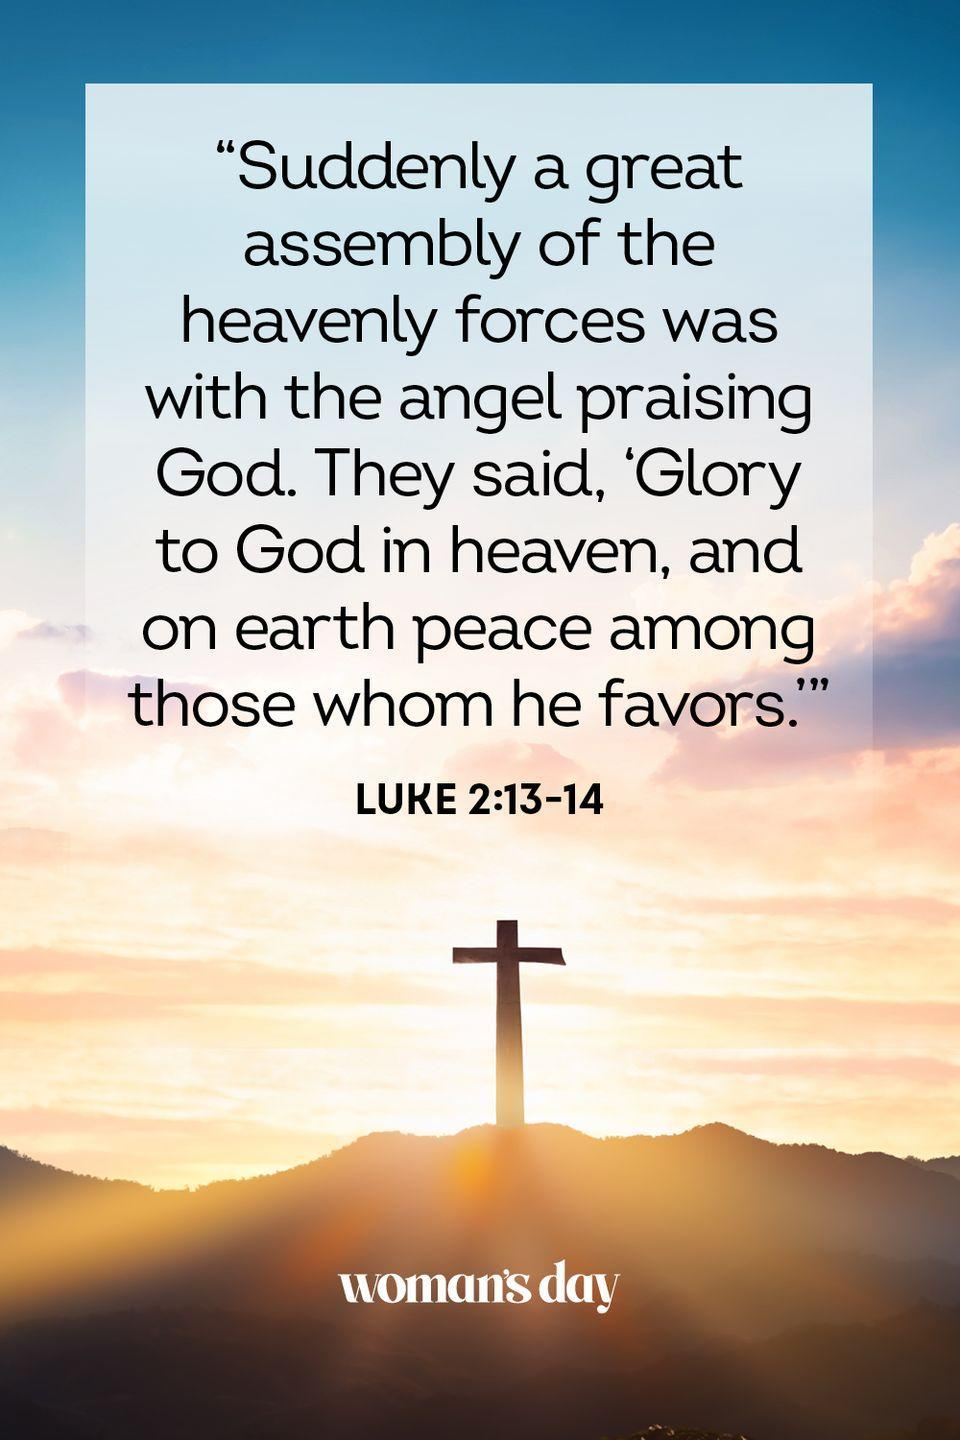 """<p>""""Suddenly a great assembly of the heavenly forces was with the angel praising God. They said, 'Glory to God in heaven, and on earth peace among those whom he favors.'"""" — Luke 2:13-14</p><p><strong>The Good News: </strong>In announcing the arrival of Jesus to the terrified shepherds in the field, the angels declared God's wish for everyone: peace on earth.</p>"""